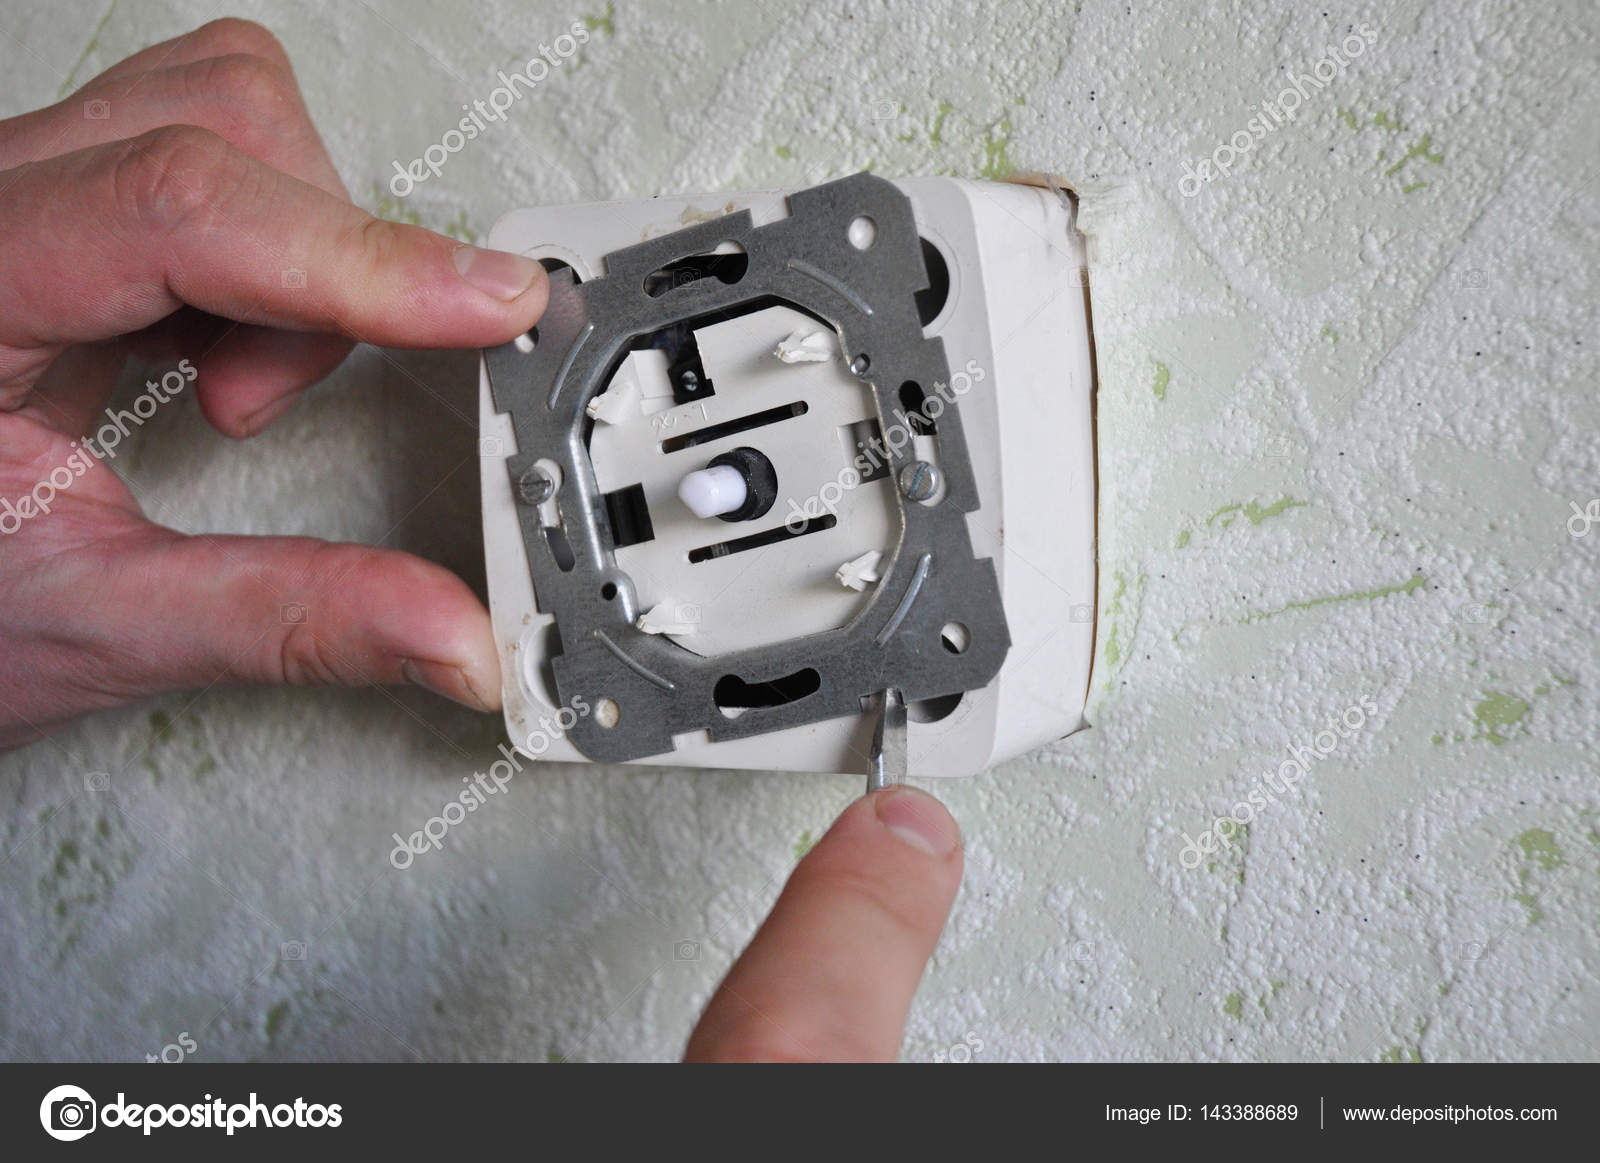 Dimmer light switch installation. How to Replace a Light Switch with ...